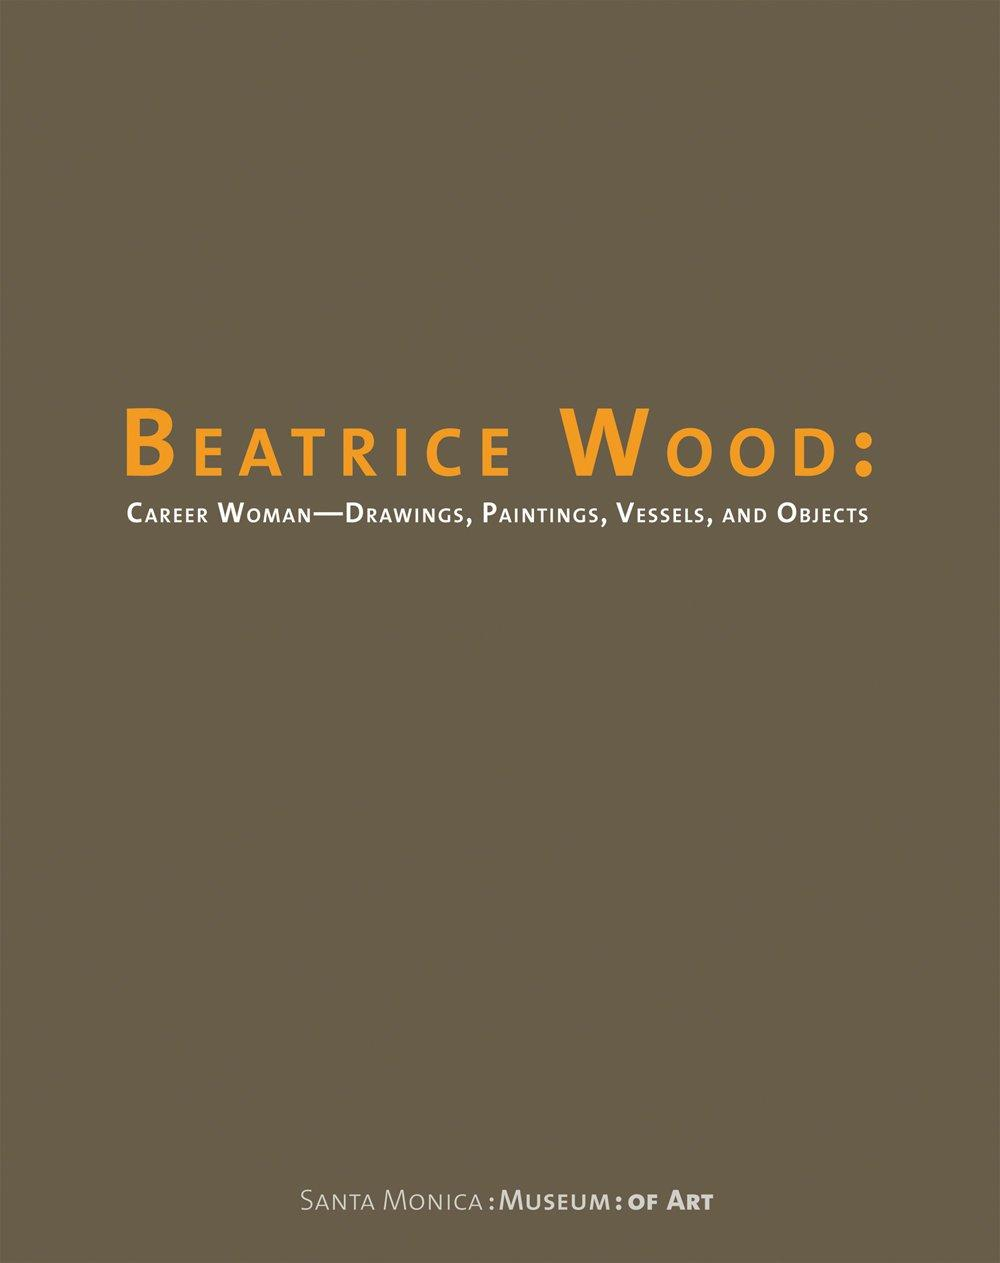 Beatrice Wood: Career Woman: Drawings, Paintings, Vessels, and Objectsby: Clark, Garth - Product Image